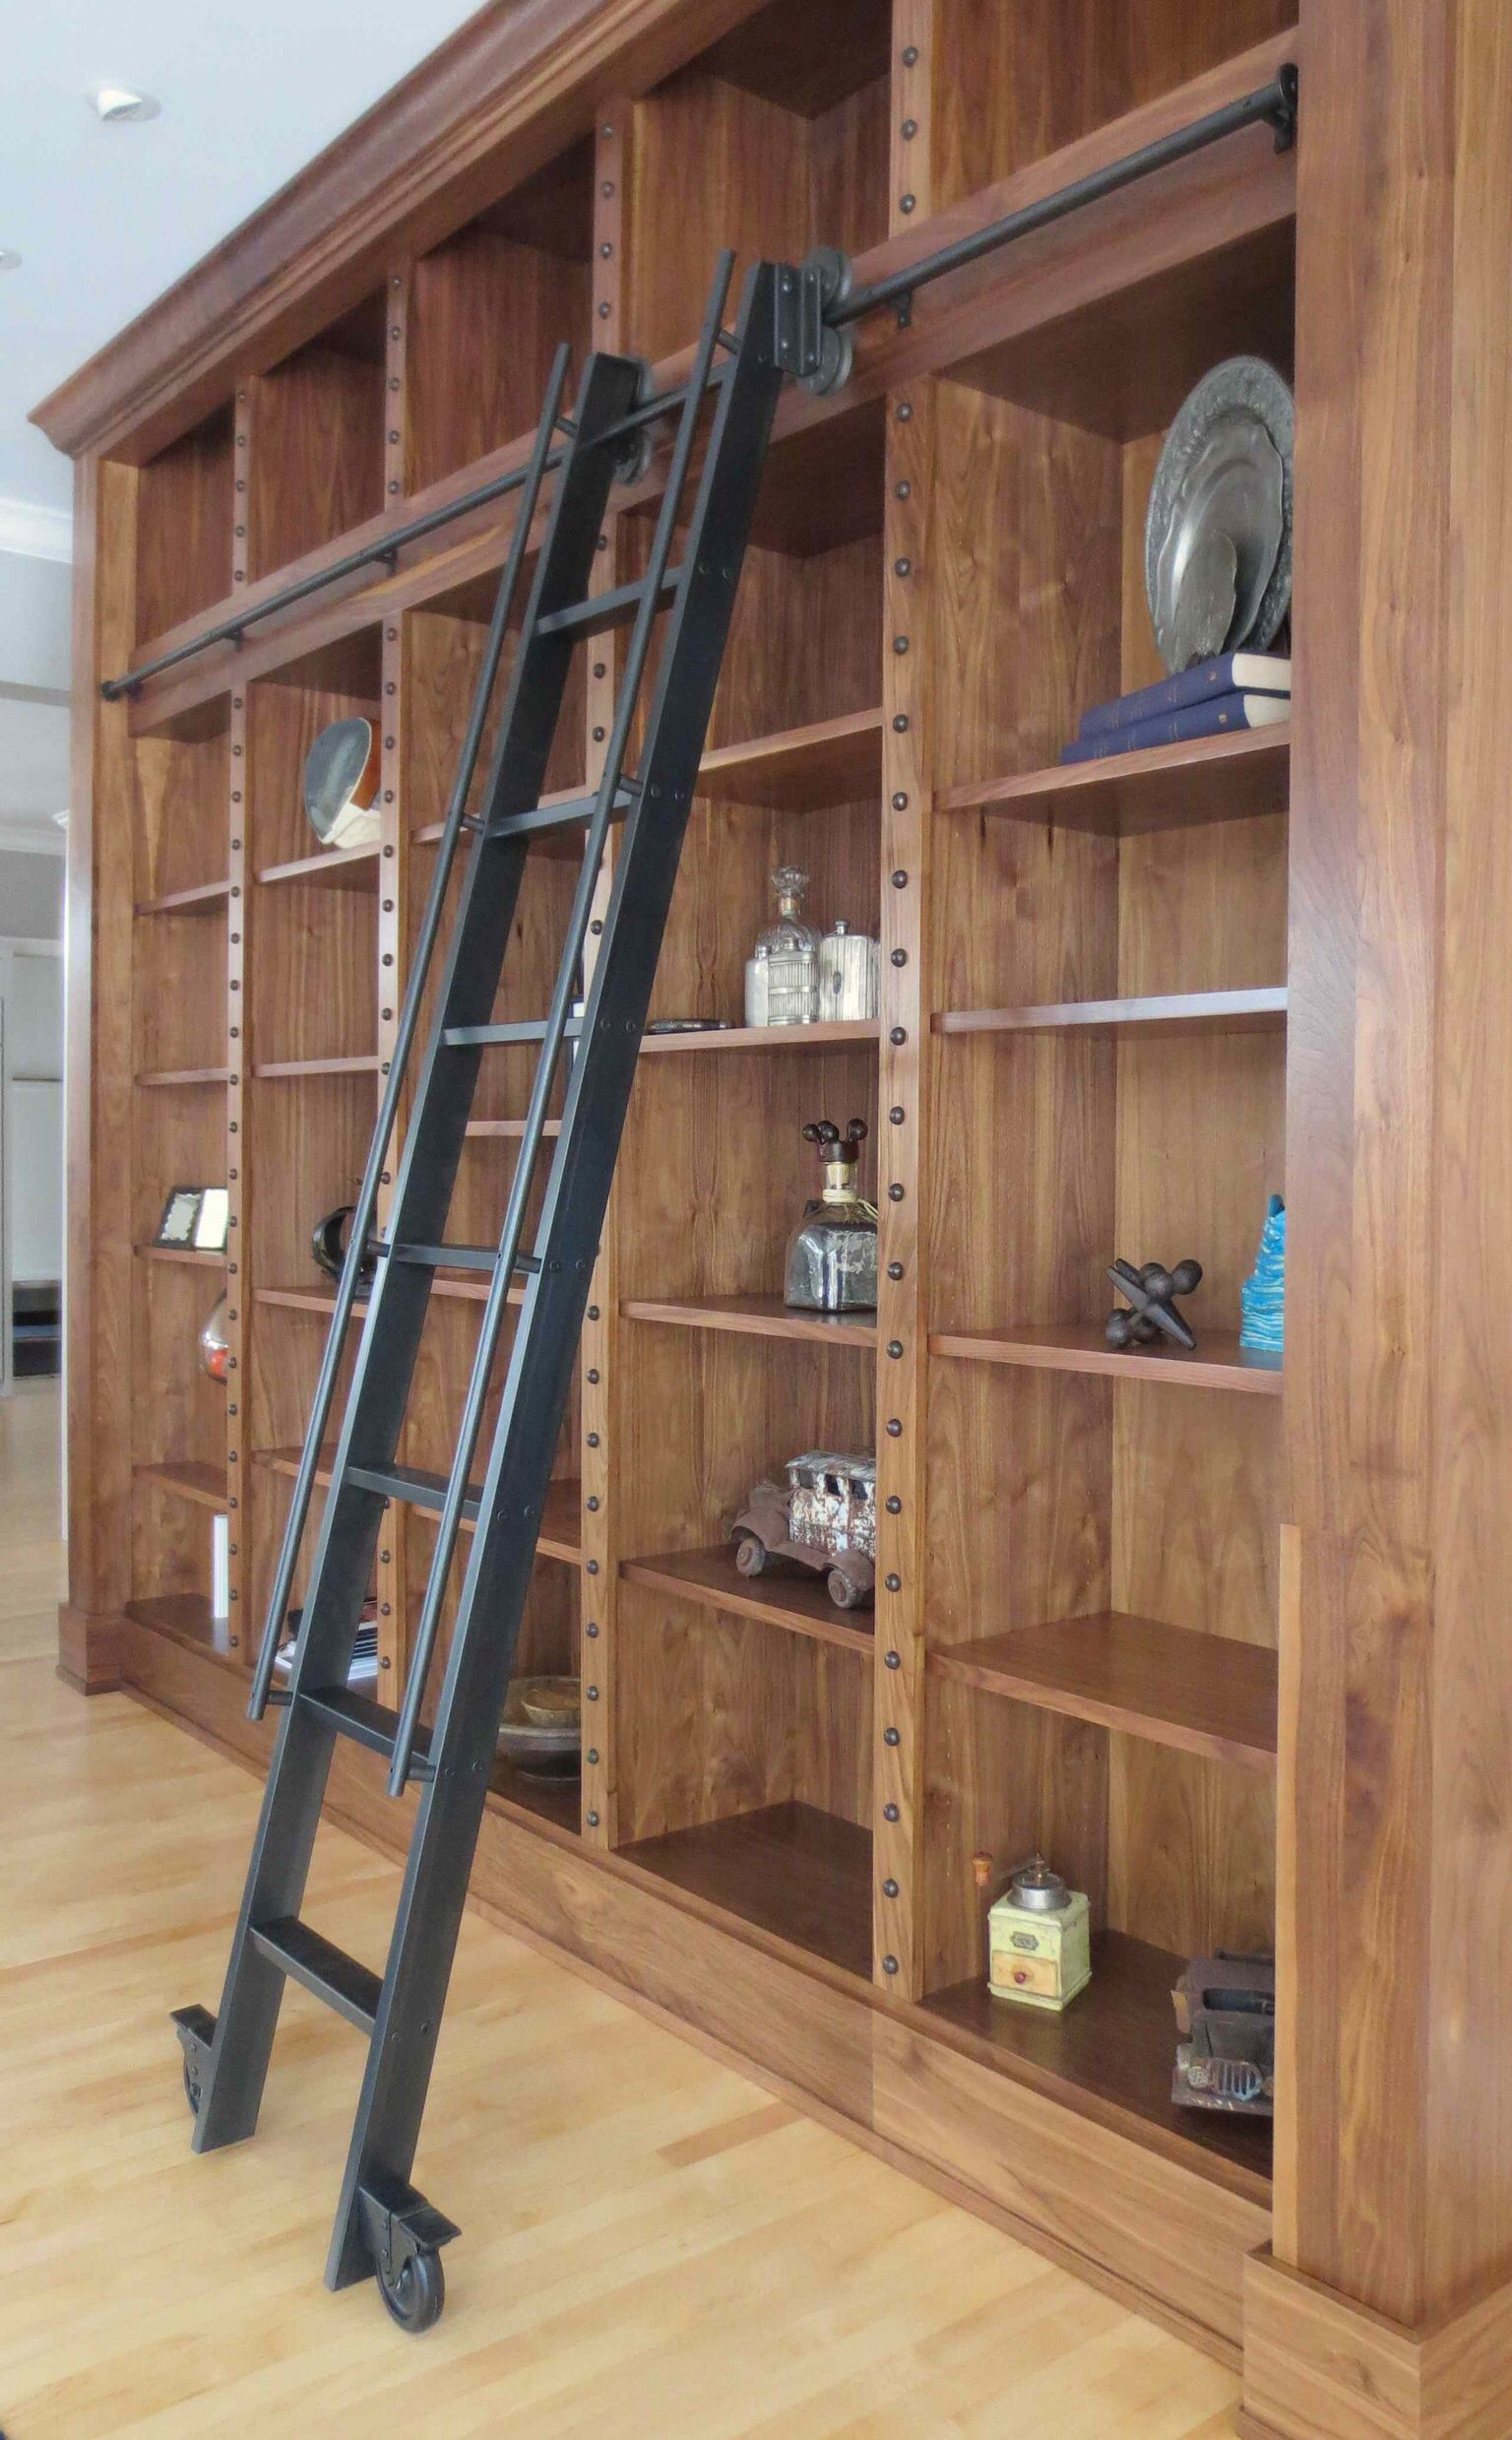 Pin By Rinehart Design Group Inc On Materials Library Ladder Ladder Bookshelf Loft Ladder